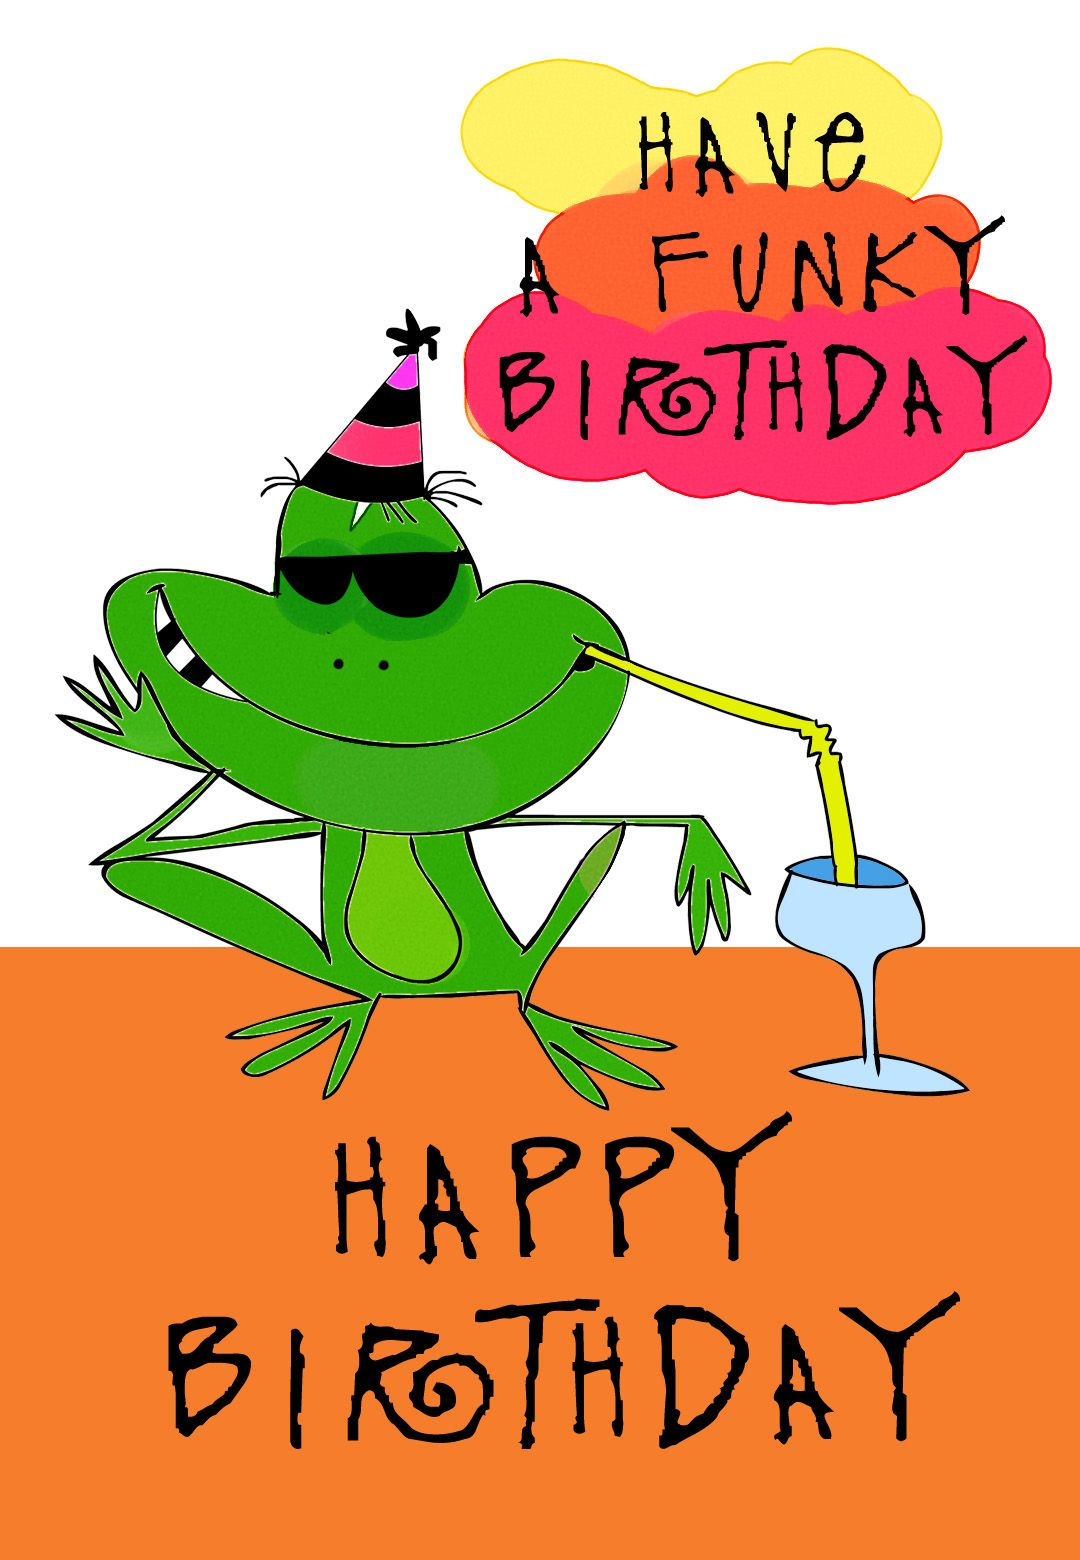 Free Printable Funky Birthday Greeting Card So Cool You Can Customize The Entire Prints Front Back Inside X2